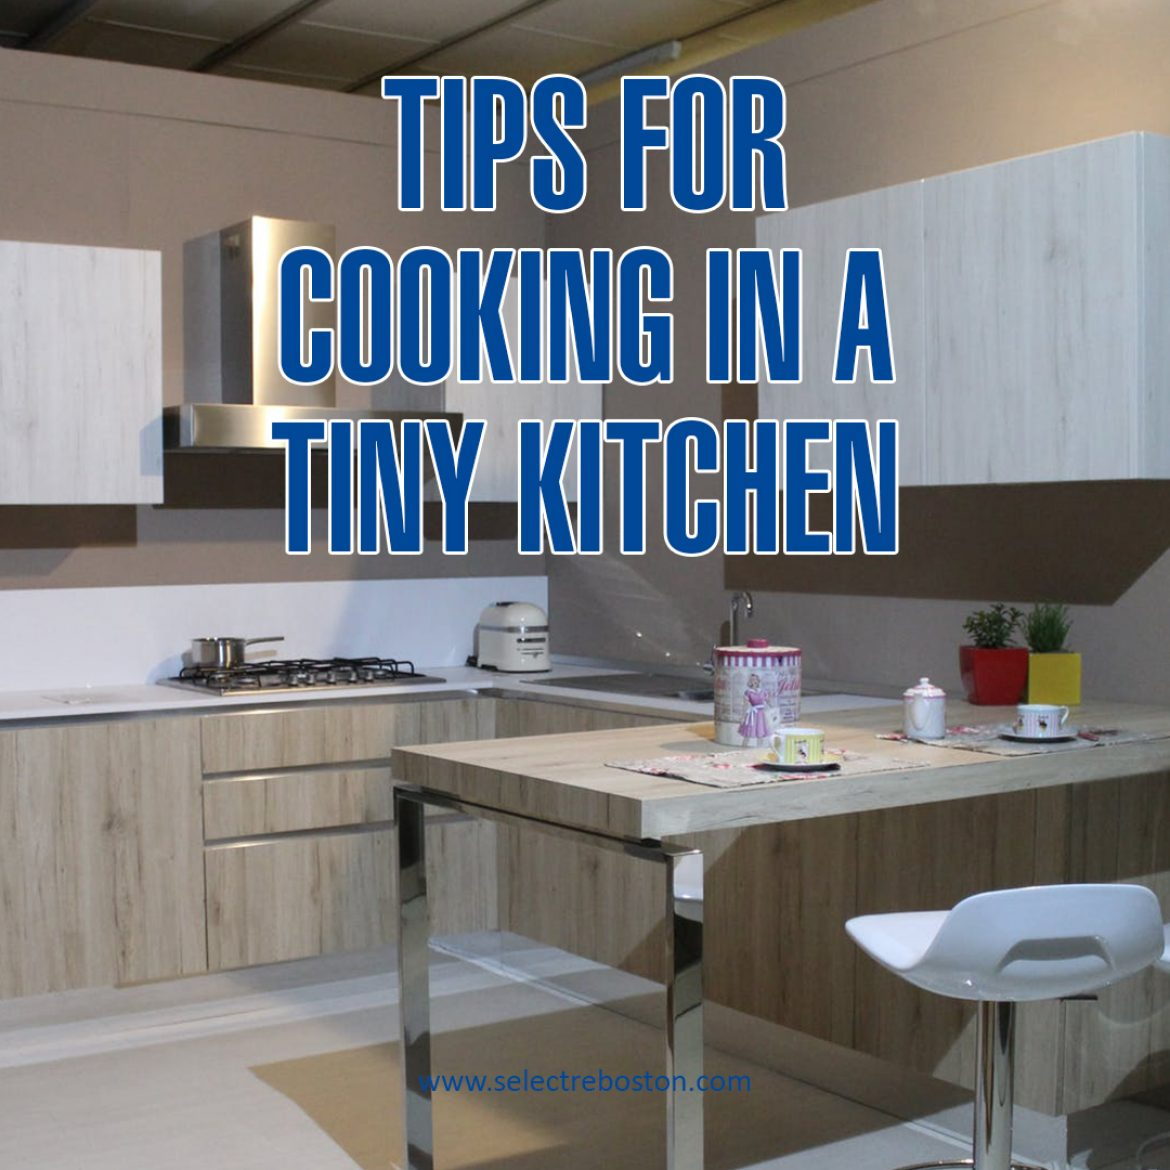 5 Genius Tips for Cooking in a Tiny Kitchen - SelectRE Boston